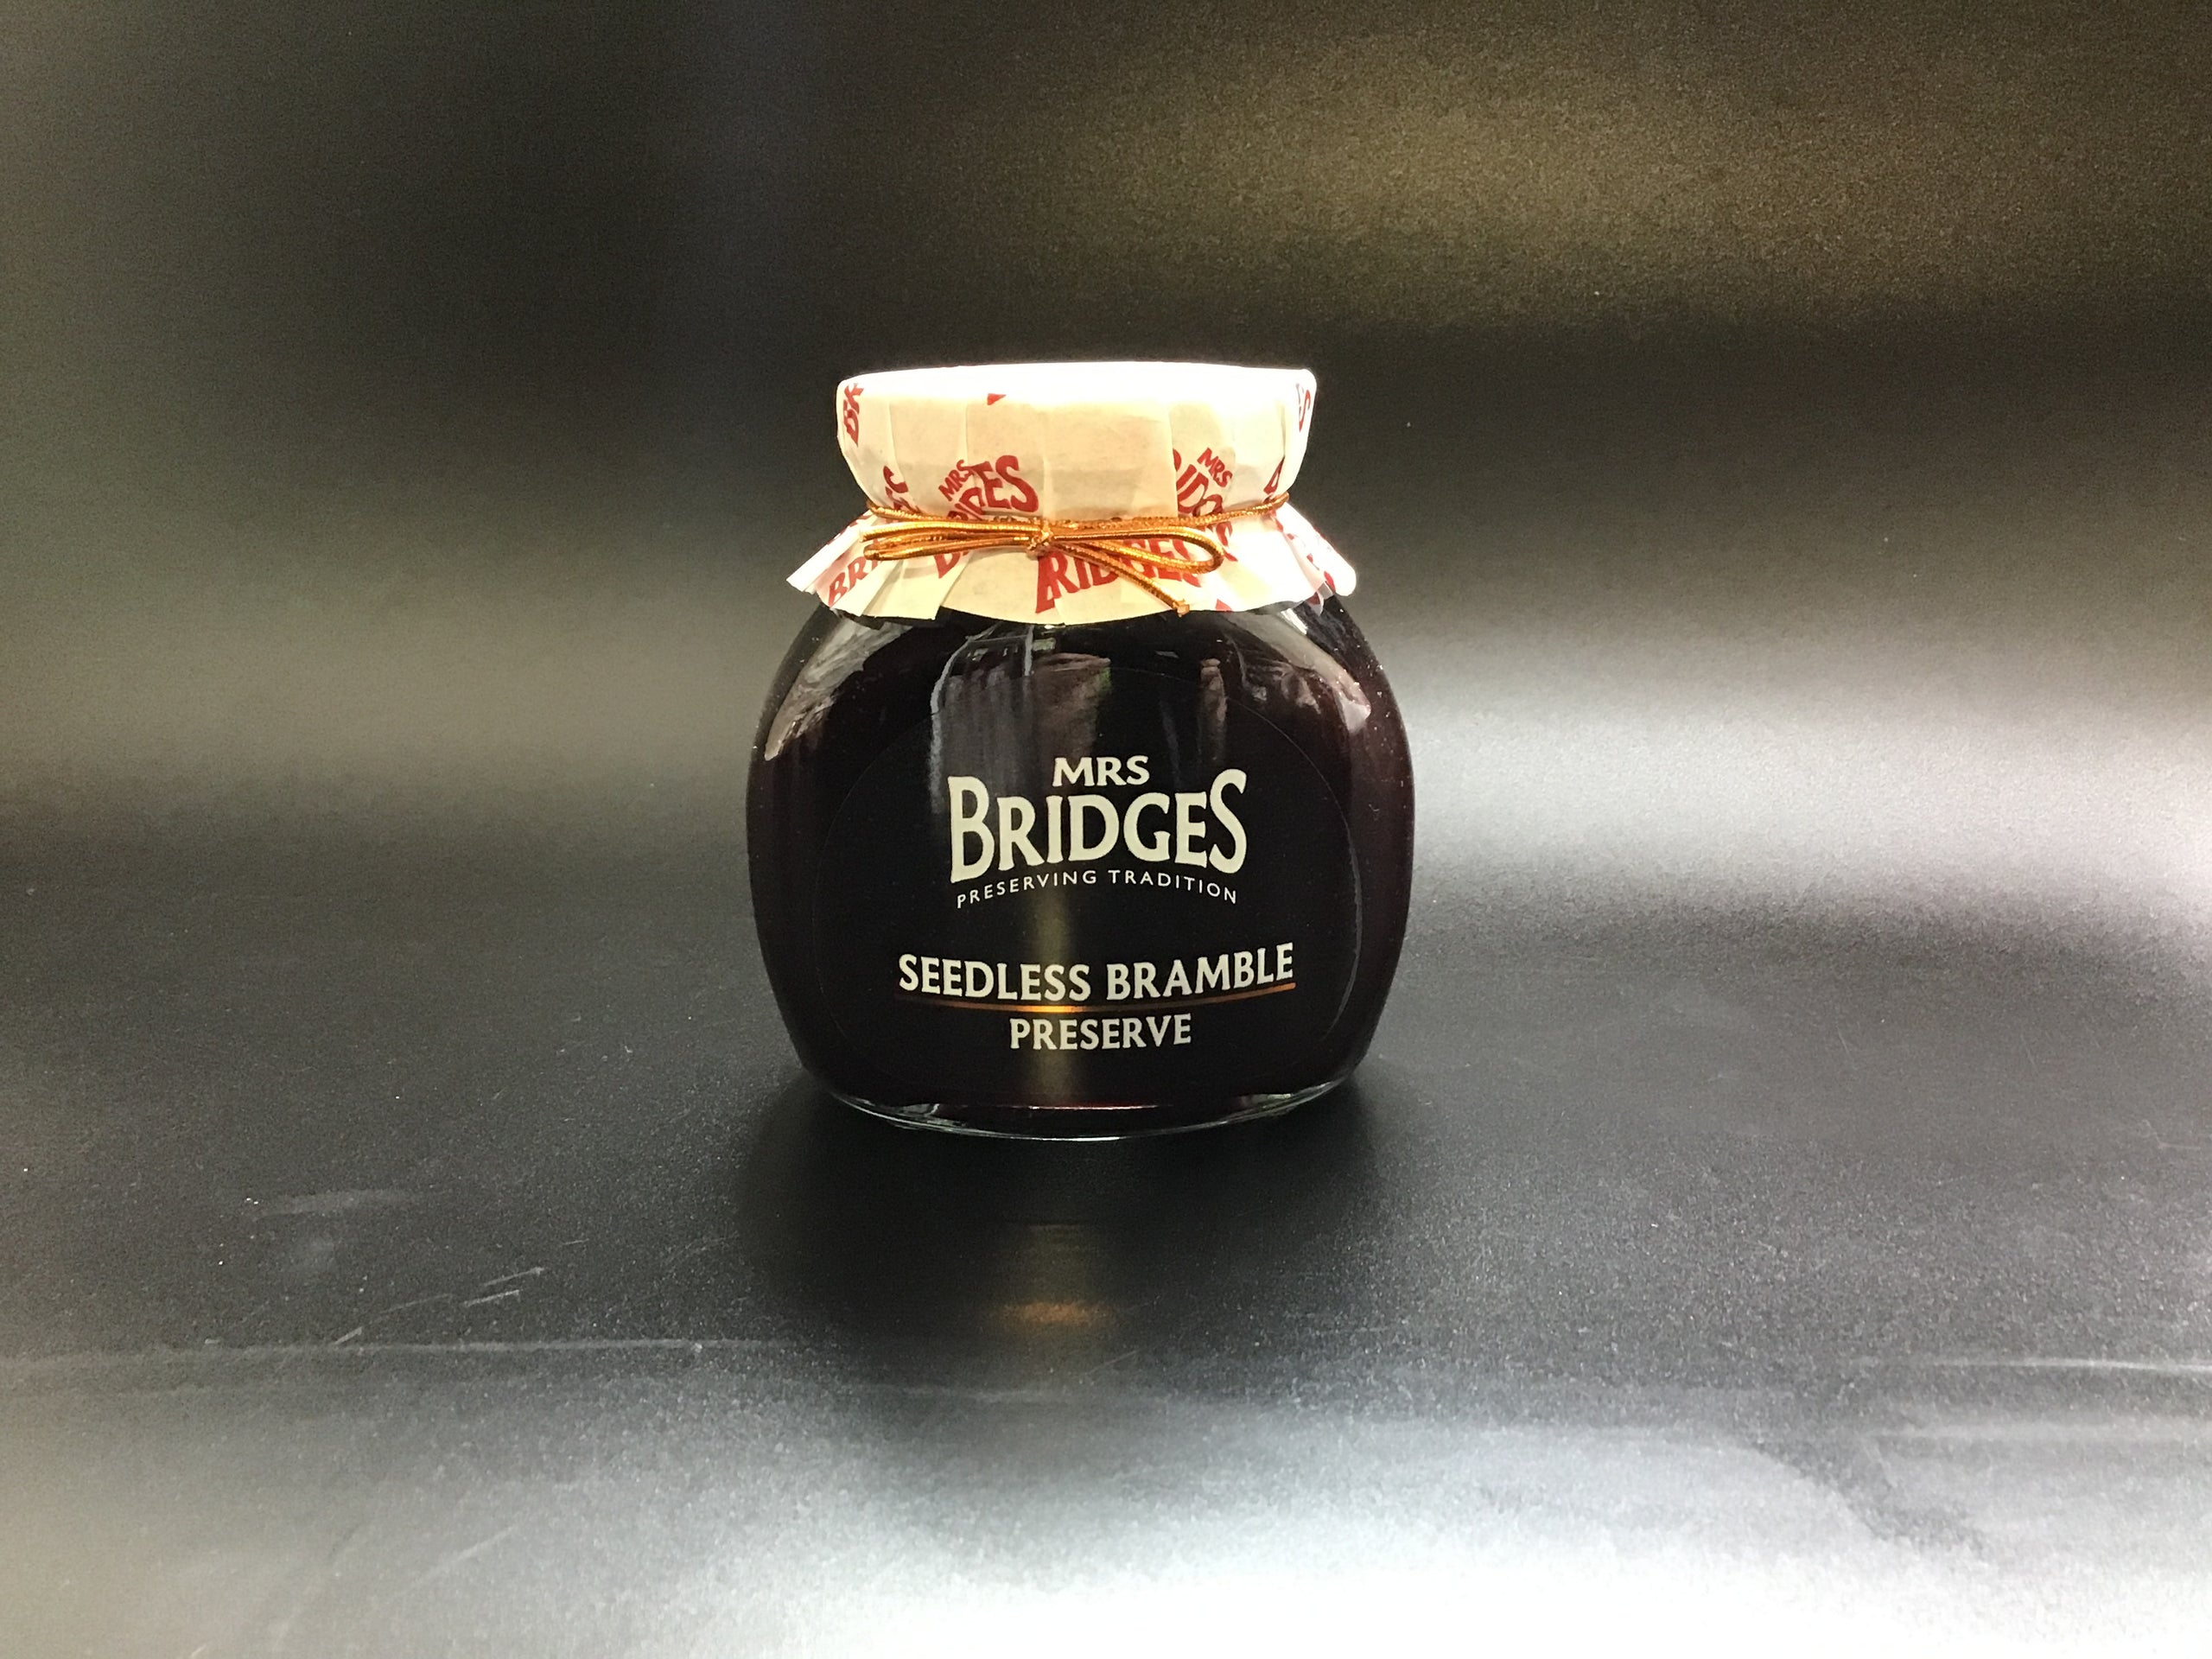 Mrs Bridges Seedless Bramble Preserve